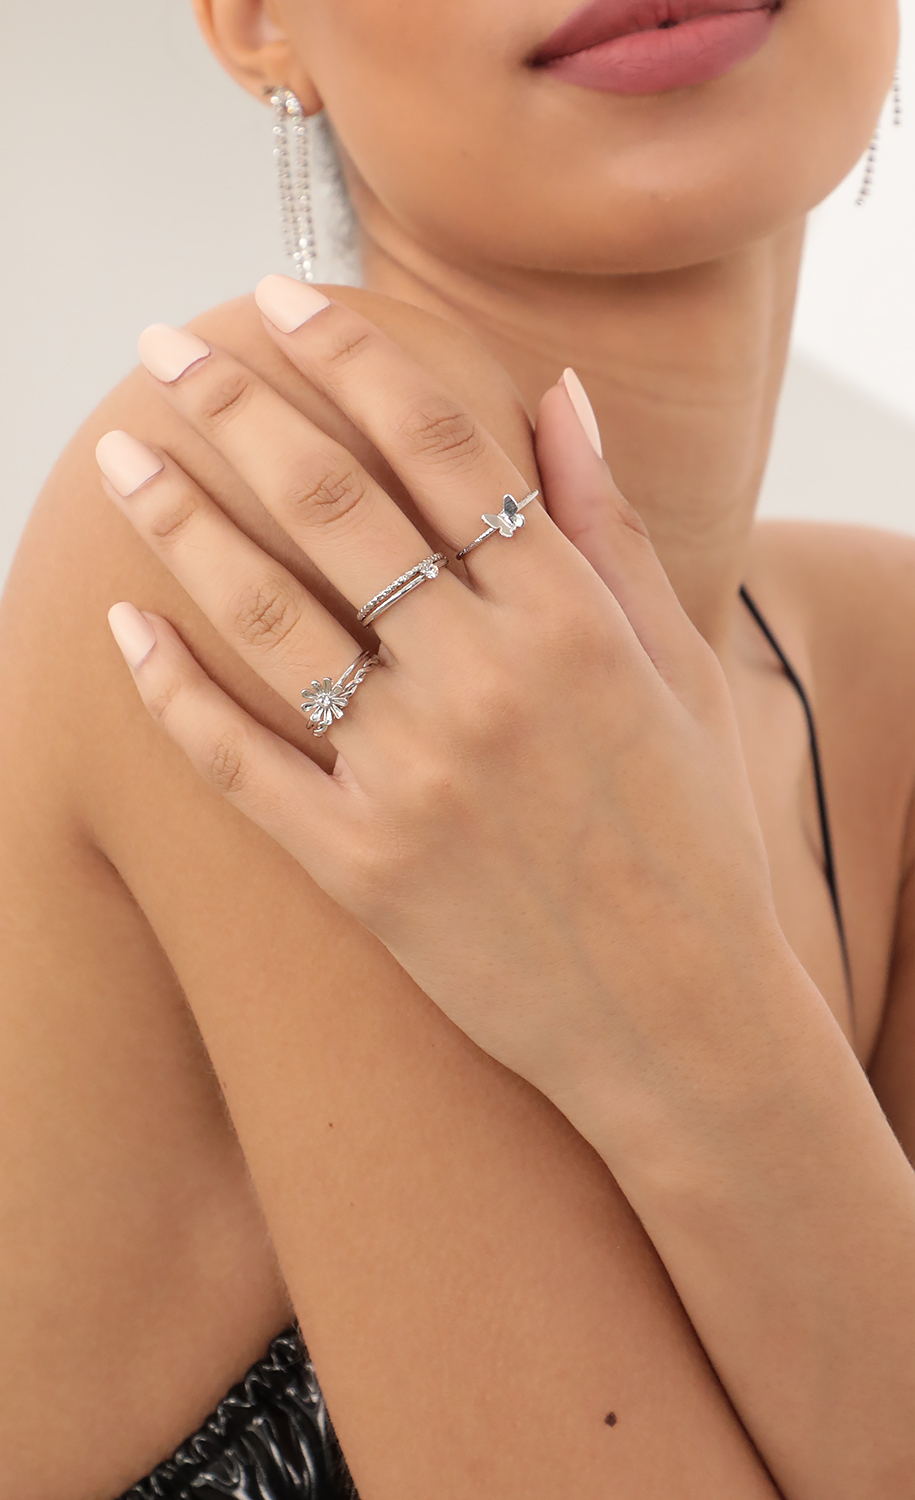 Daisy Butterfly Dainty Silver Ring Set